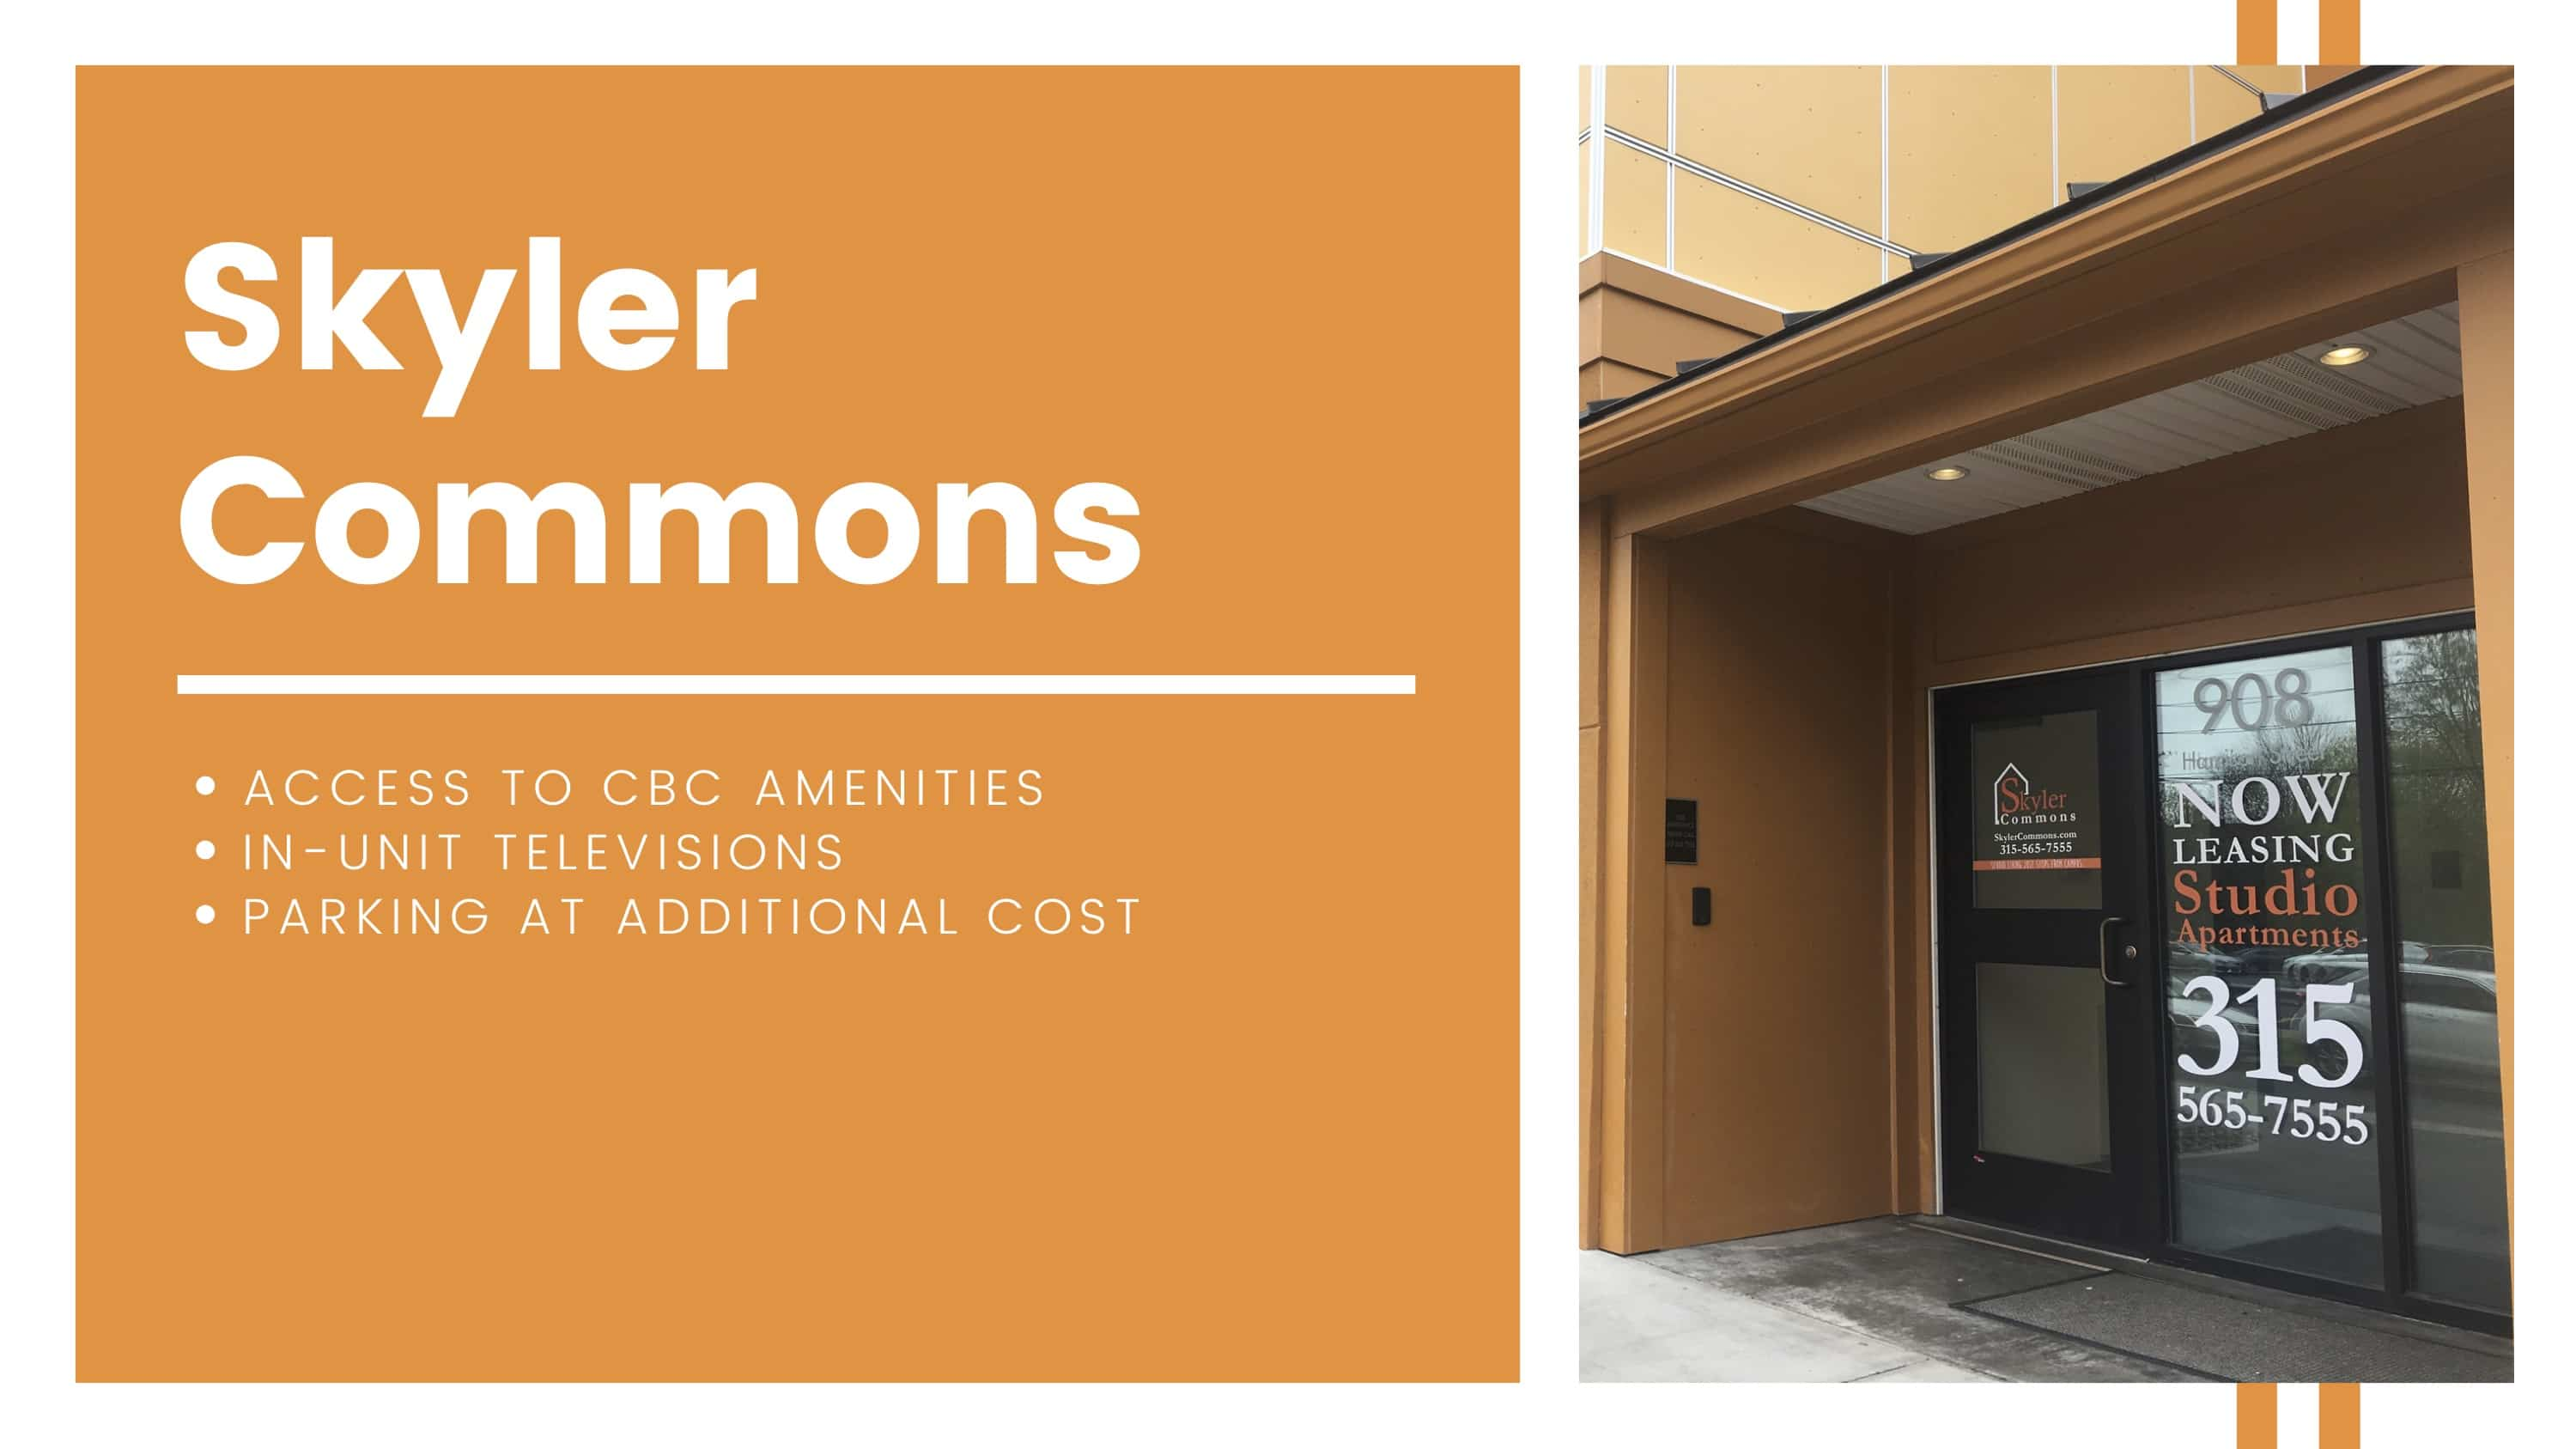 Skyler Commons amenities